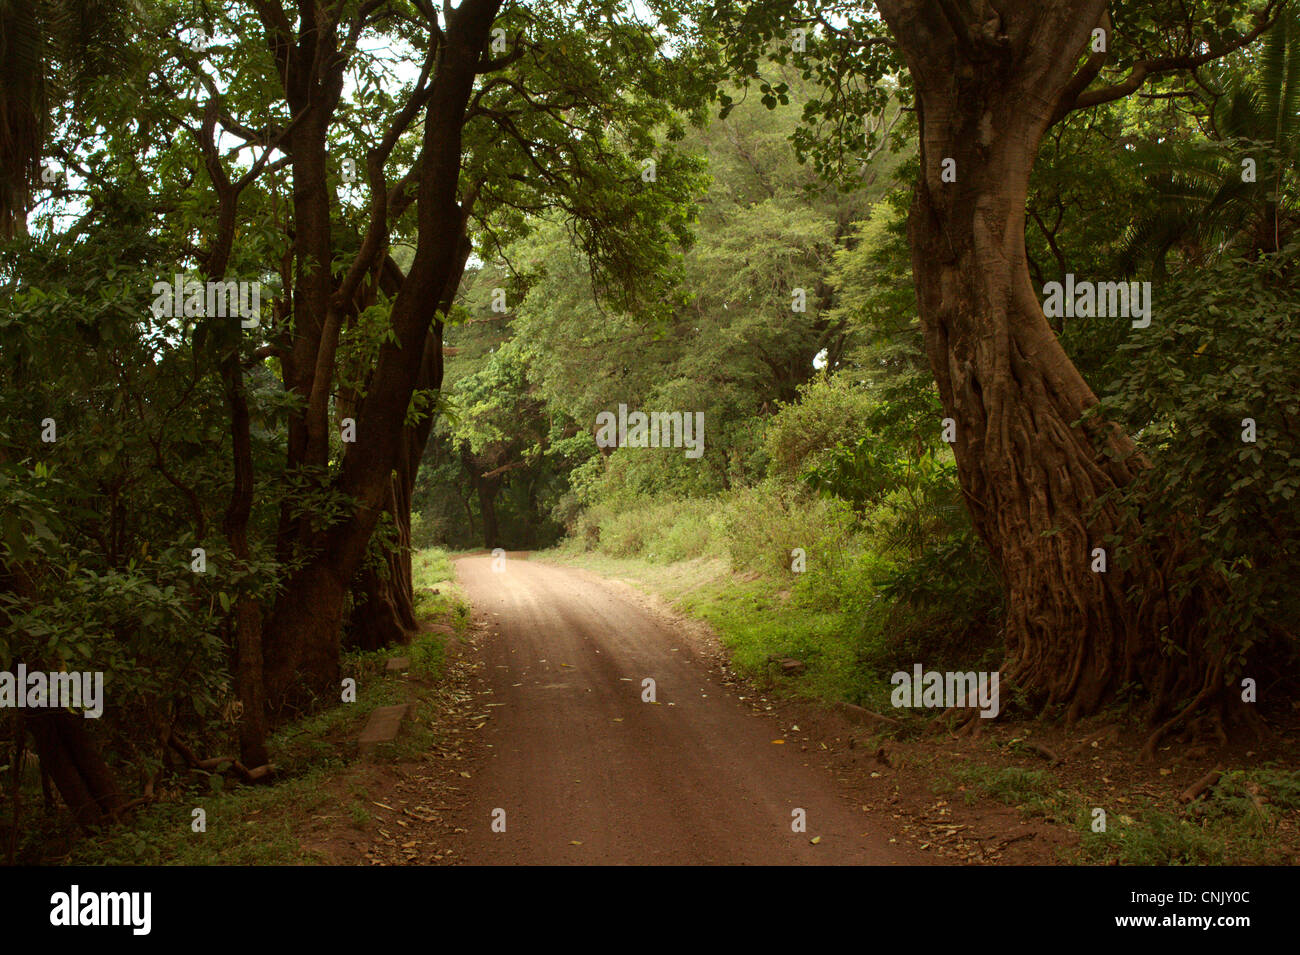 Road across the tropical forest in Lake Manyara National Park, Tanzania - Stock Image